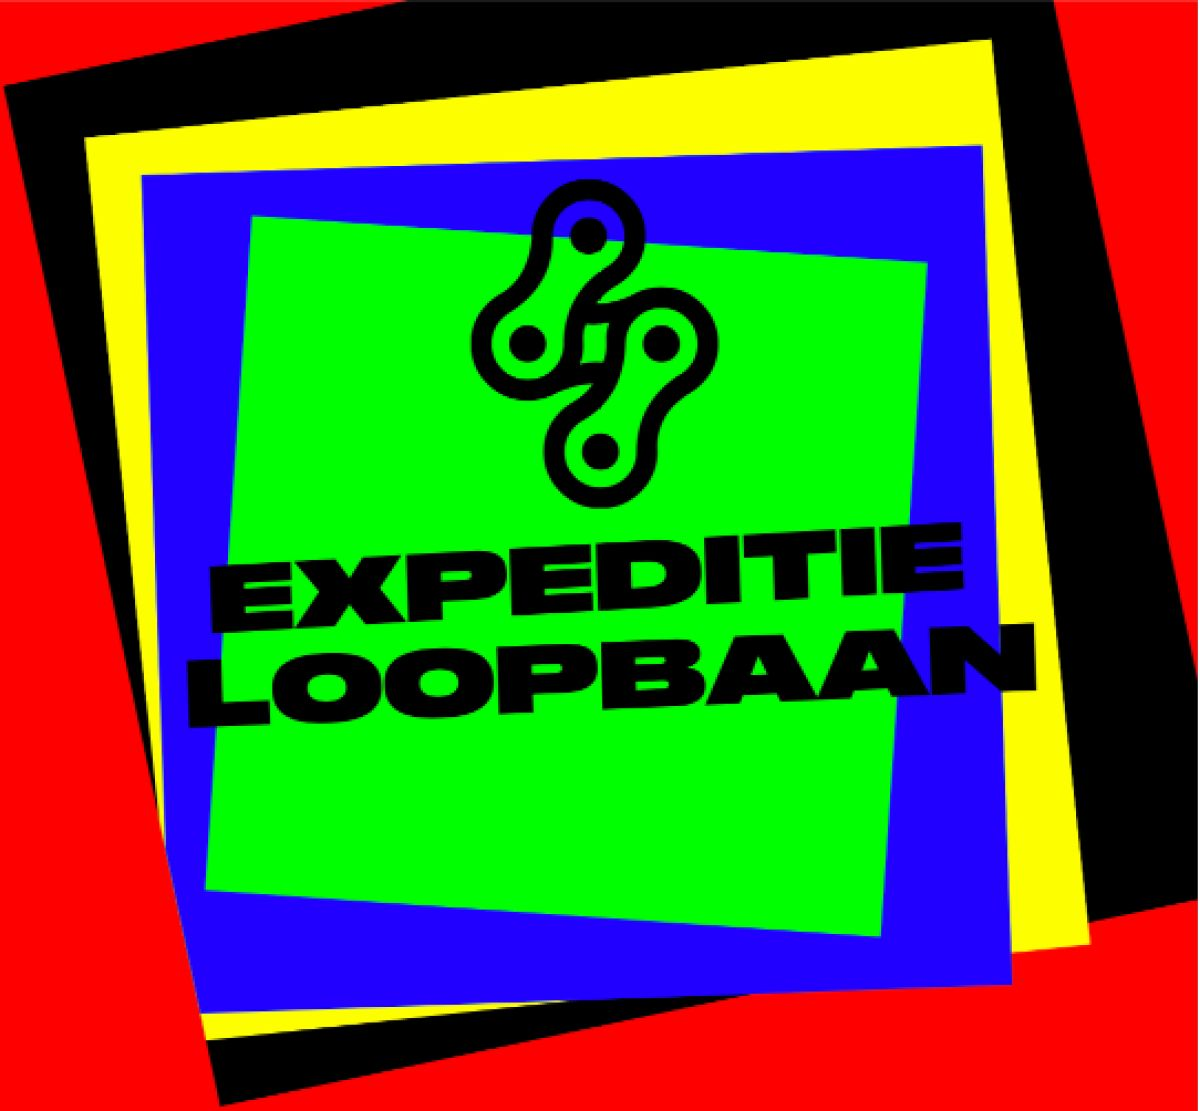 Expeditie Loopbaan